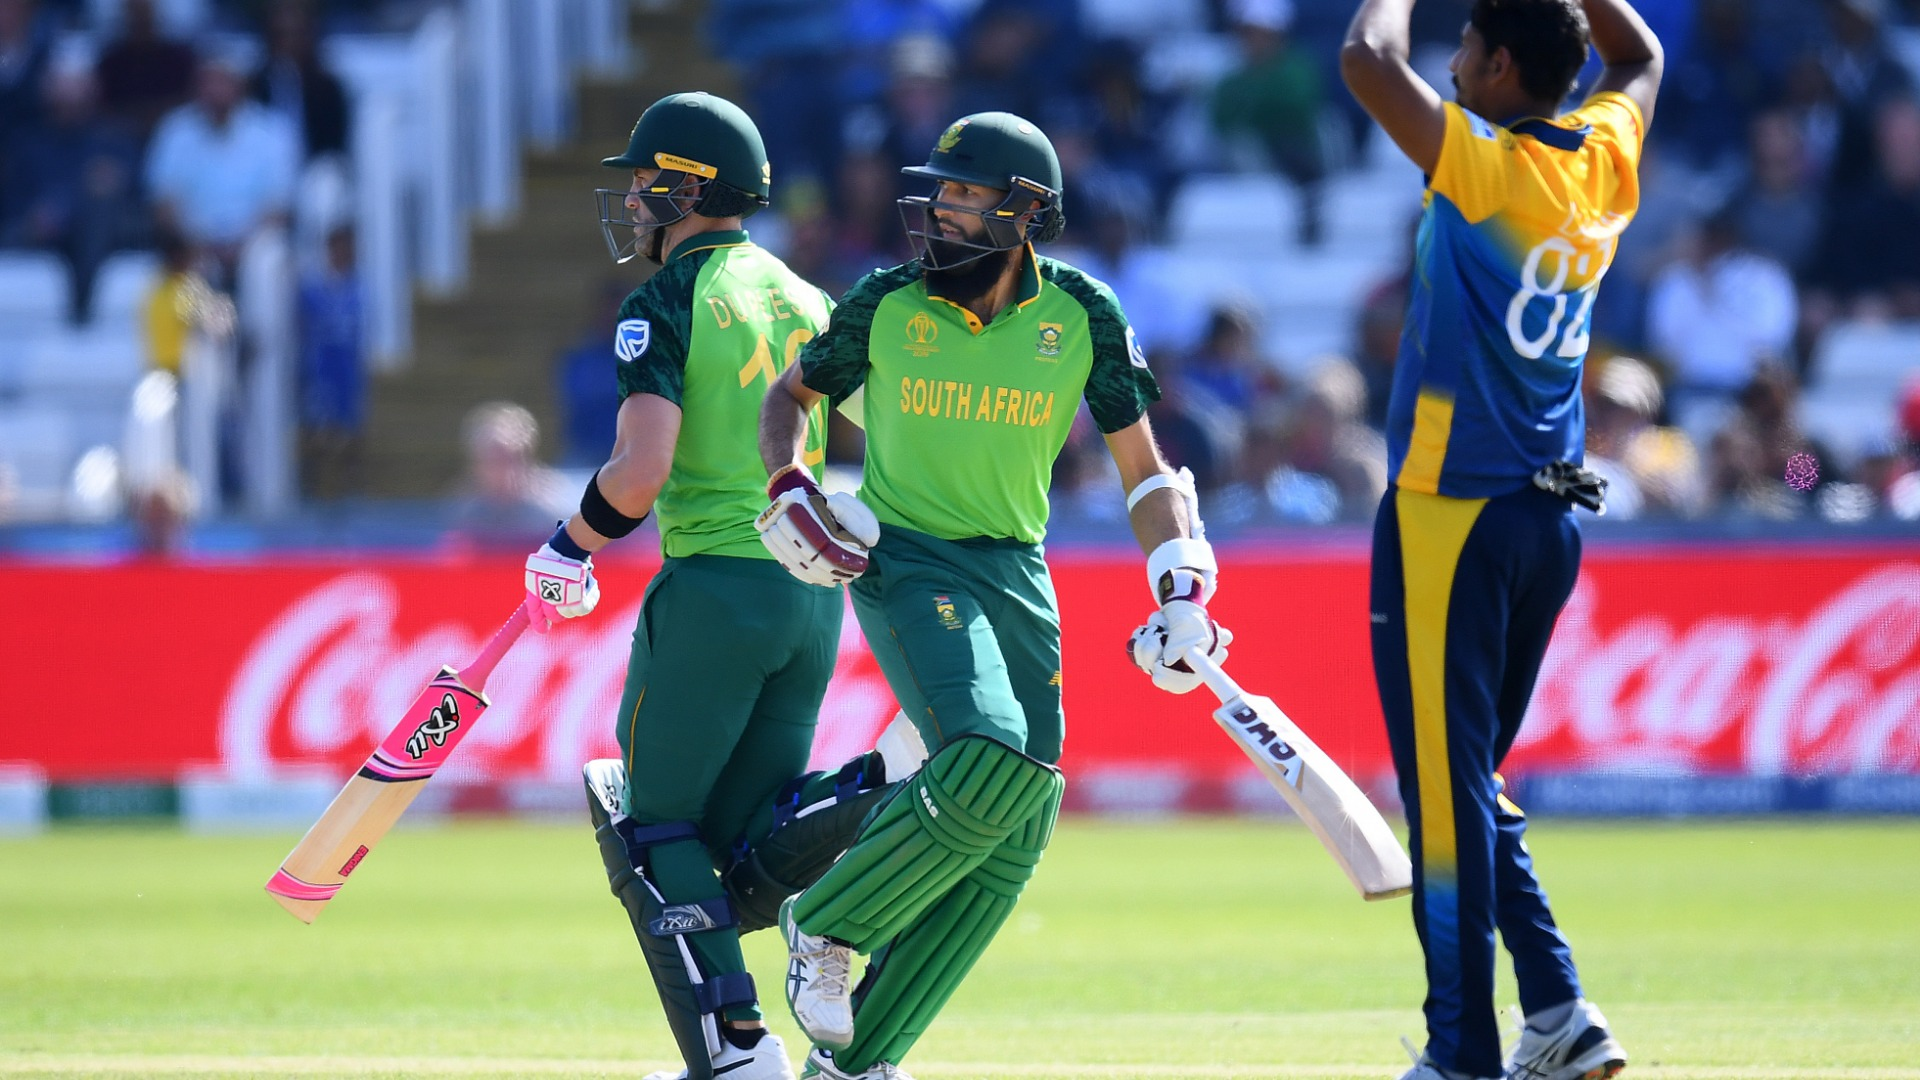 A long time coming - Du Plessis stars in 'bittersweet' South Africa win